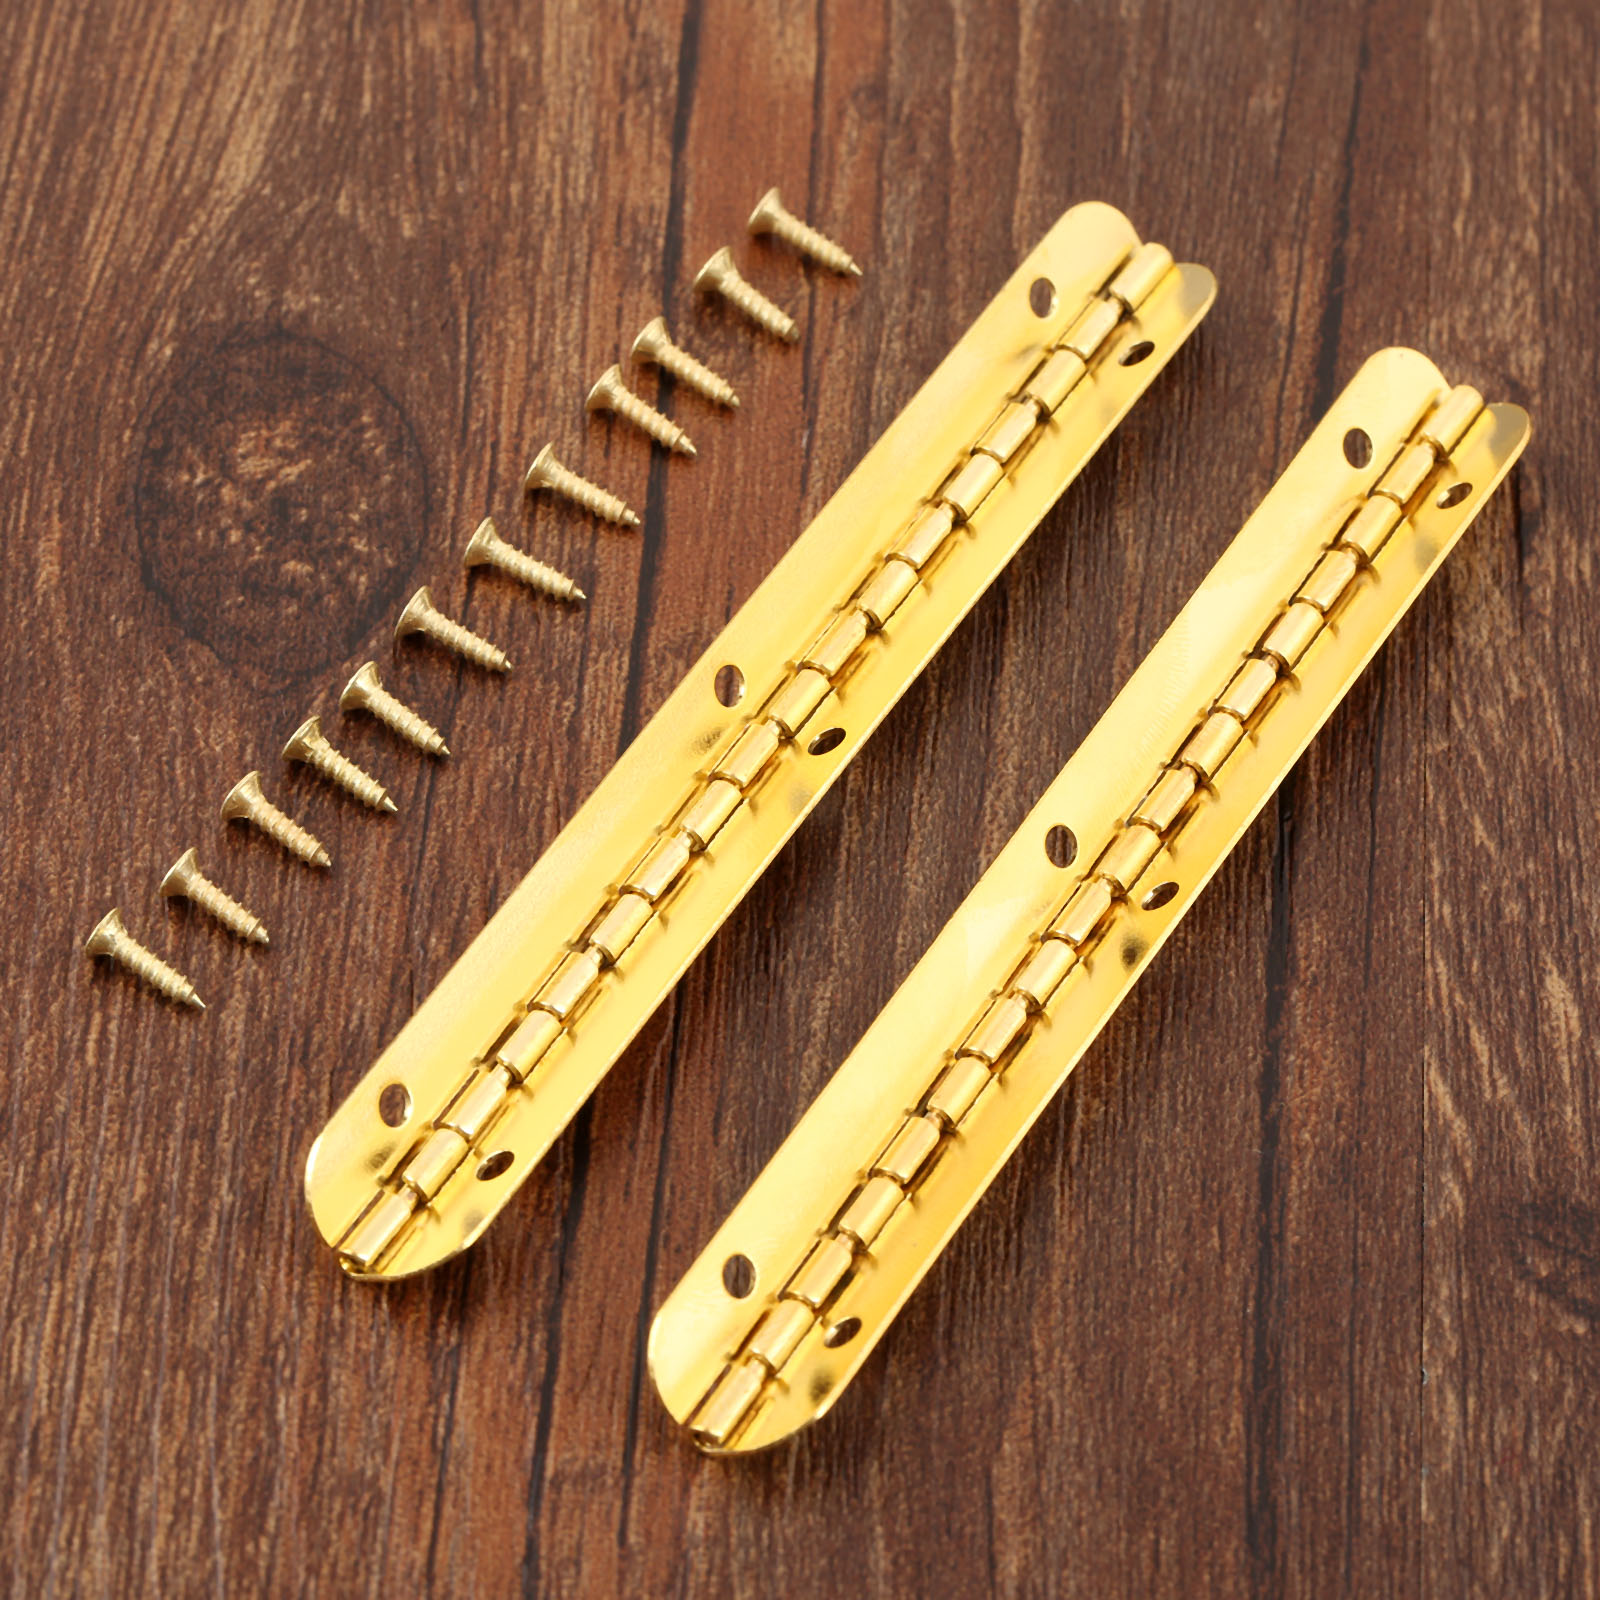 2Pcs Cabinet Drawer Door Hinges Furniture Fittings Antique Jewelry Wood Boxes Decorative Hinges Furniture Hardware 100*9mm